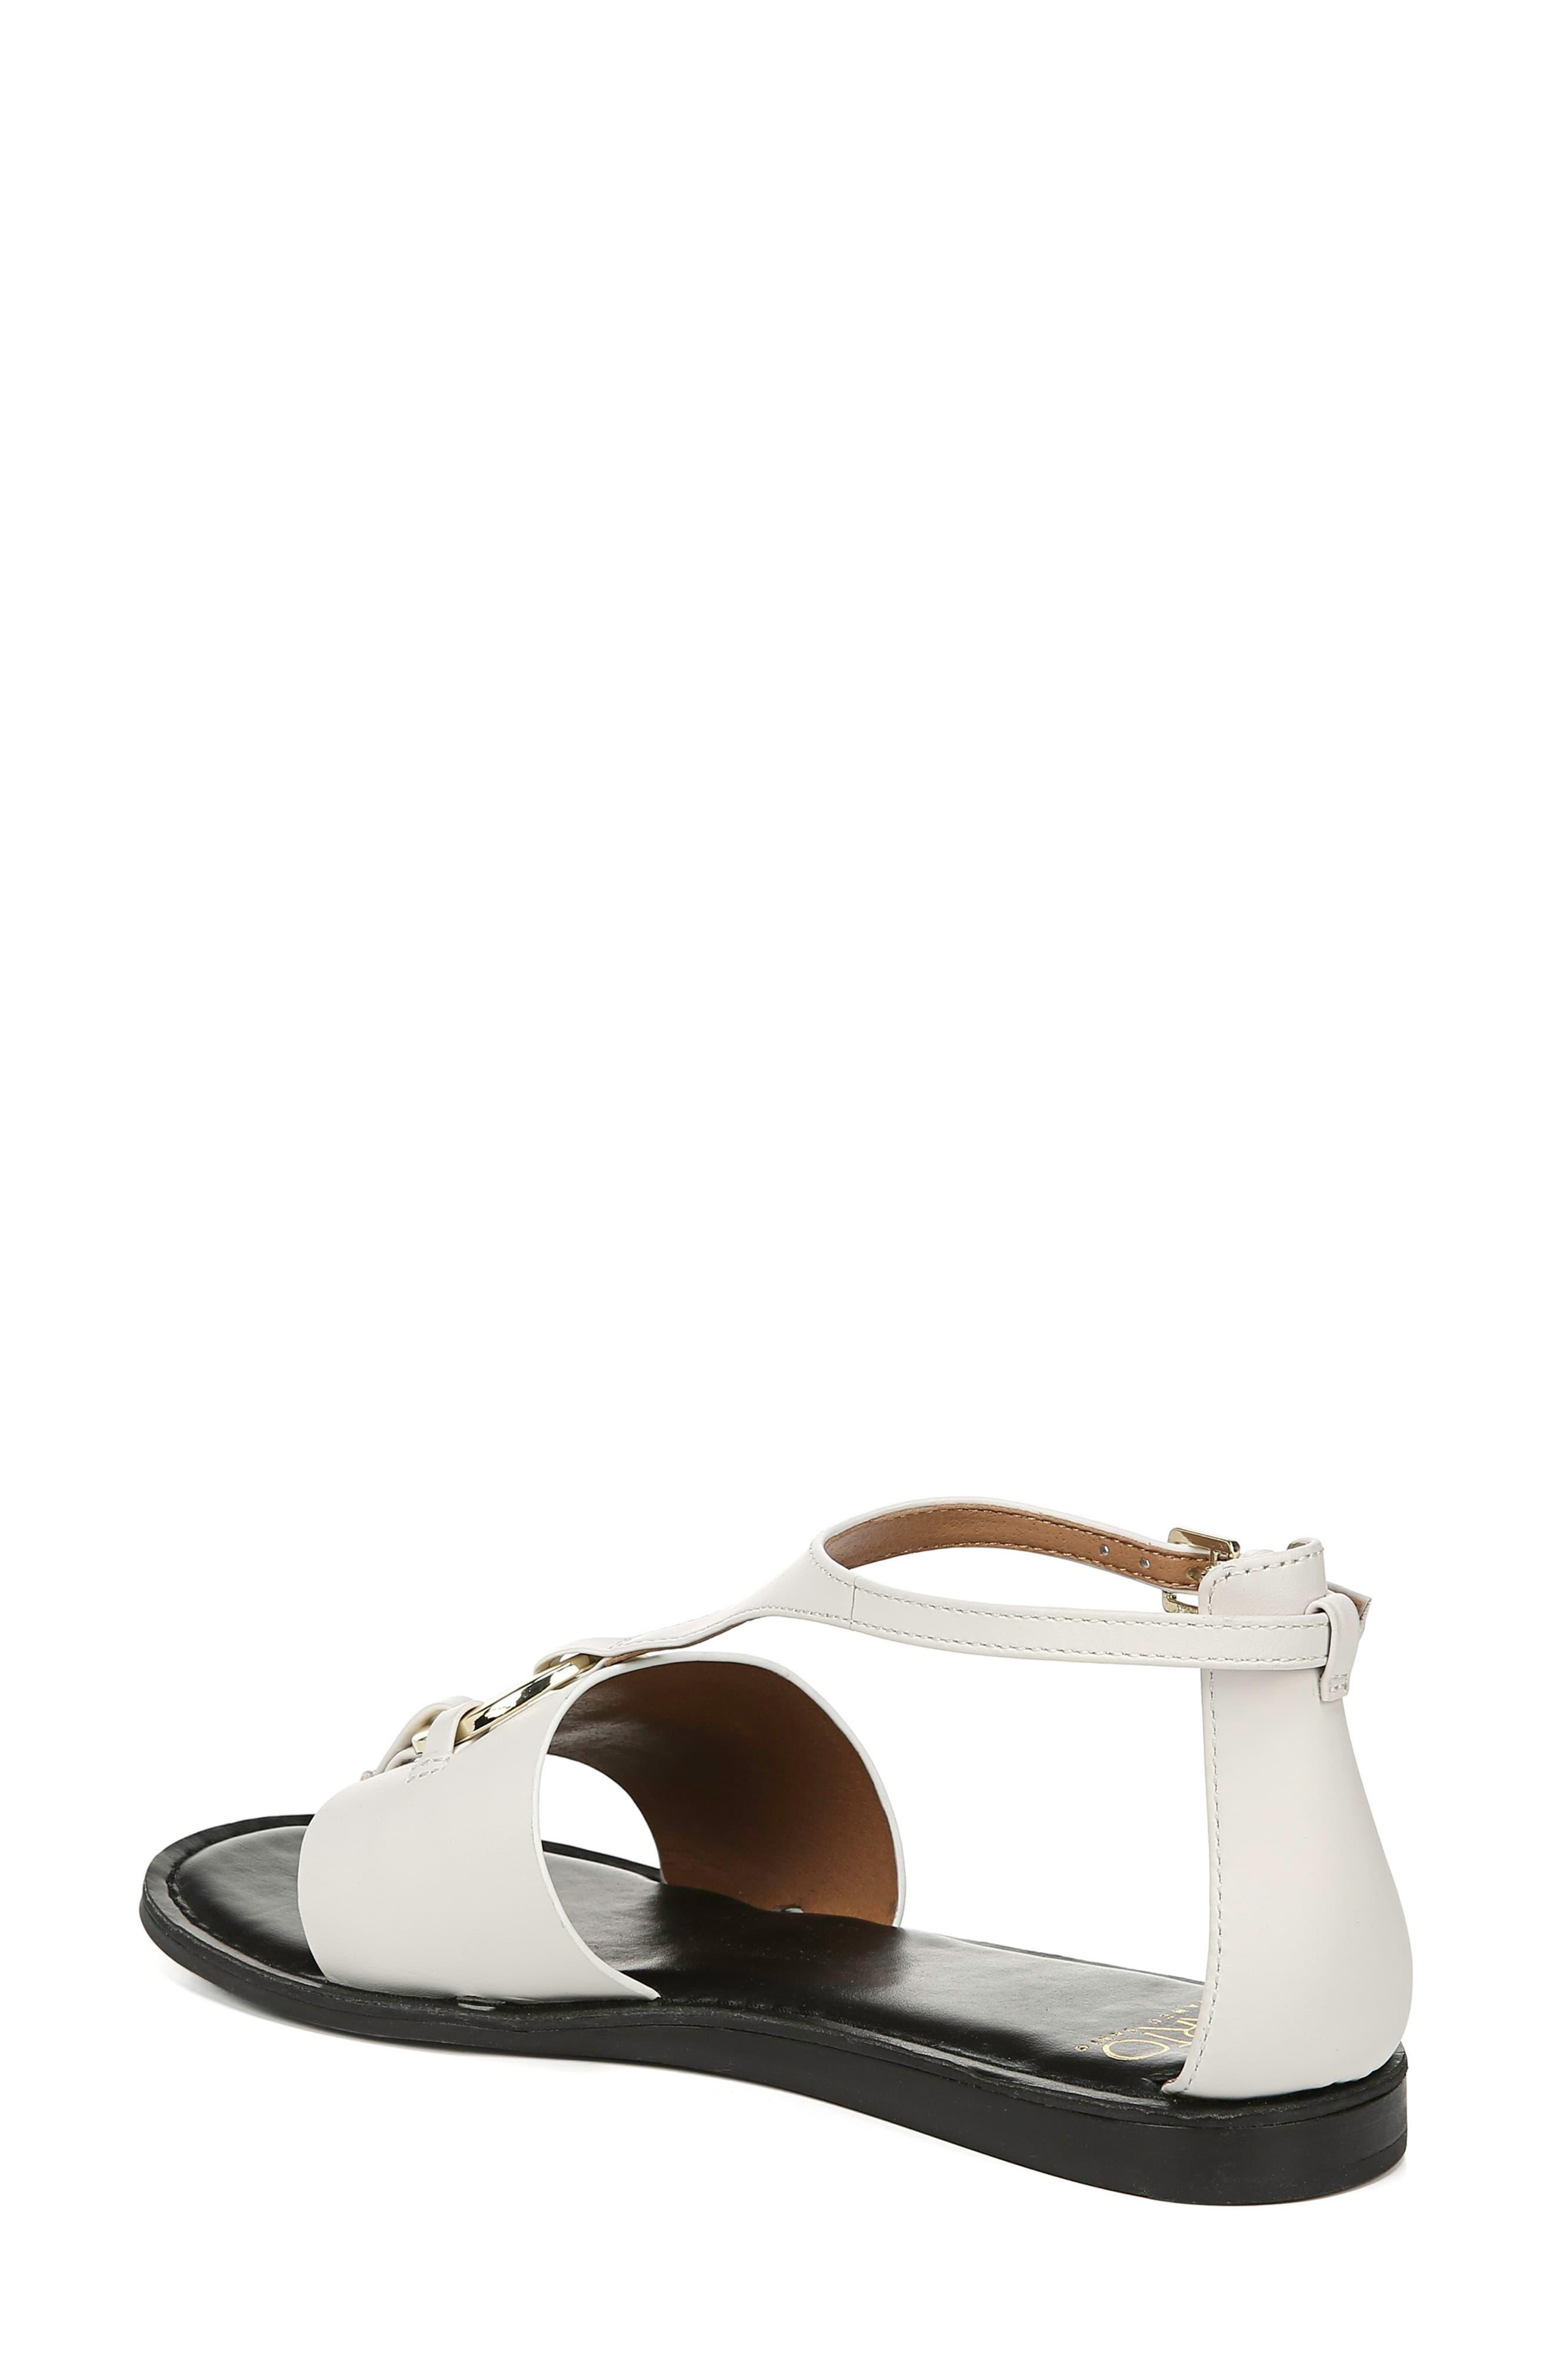 7a45291d9 ... Franco Sarto - Multicolor Sarto By Lockheart Leather O-ring Sandals -  Lyst. Visit Nordstrom. Tap to visit site